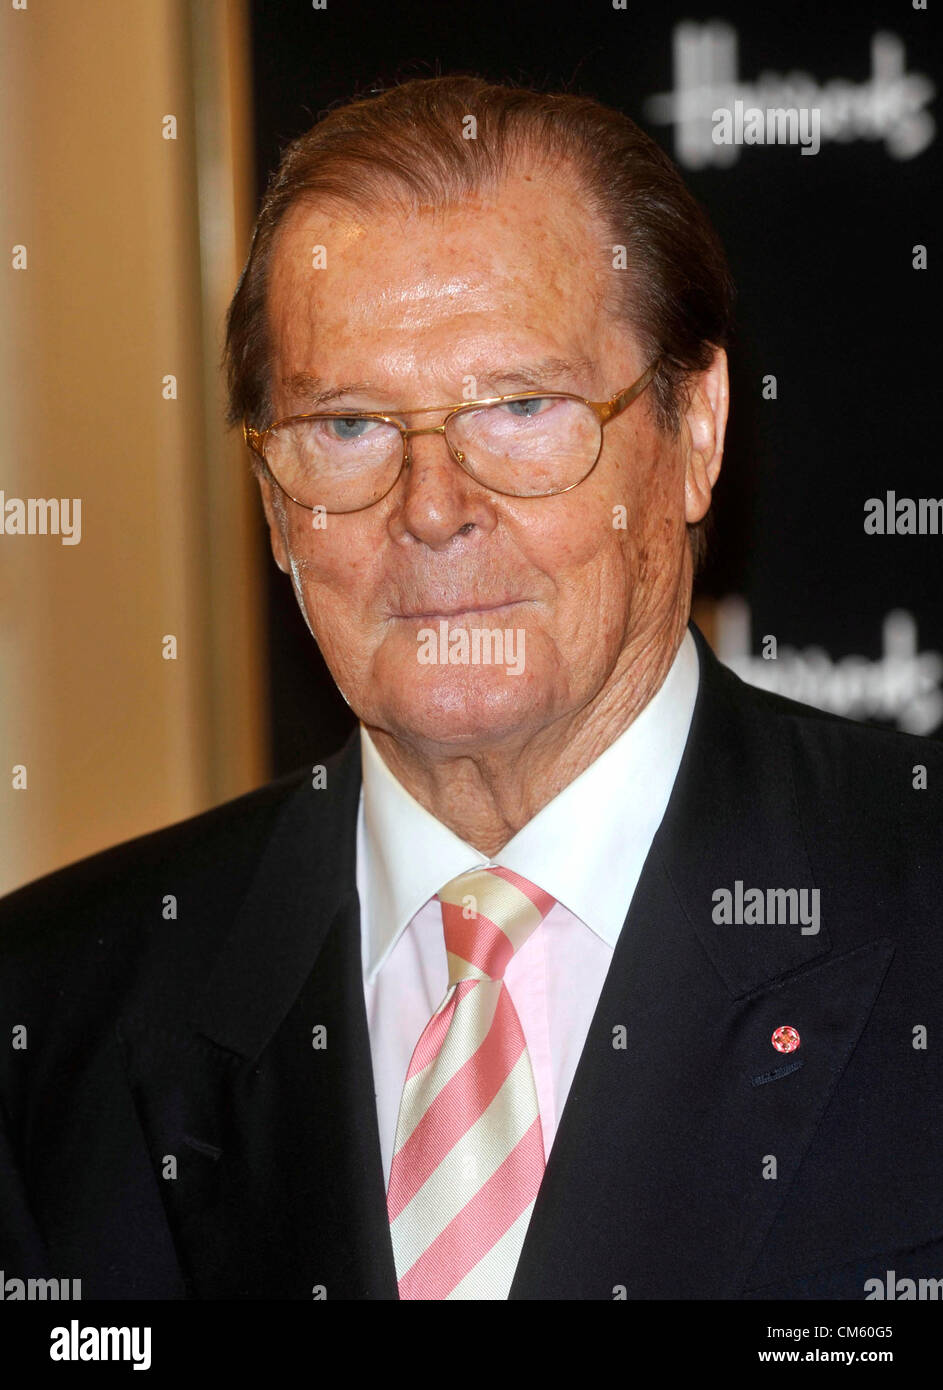 Sir Roger Moore signing copies of his book 'Bond on Bond' at Harrods, Knightsbridge London - October 11th - Stock Image